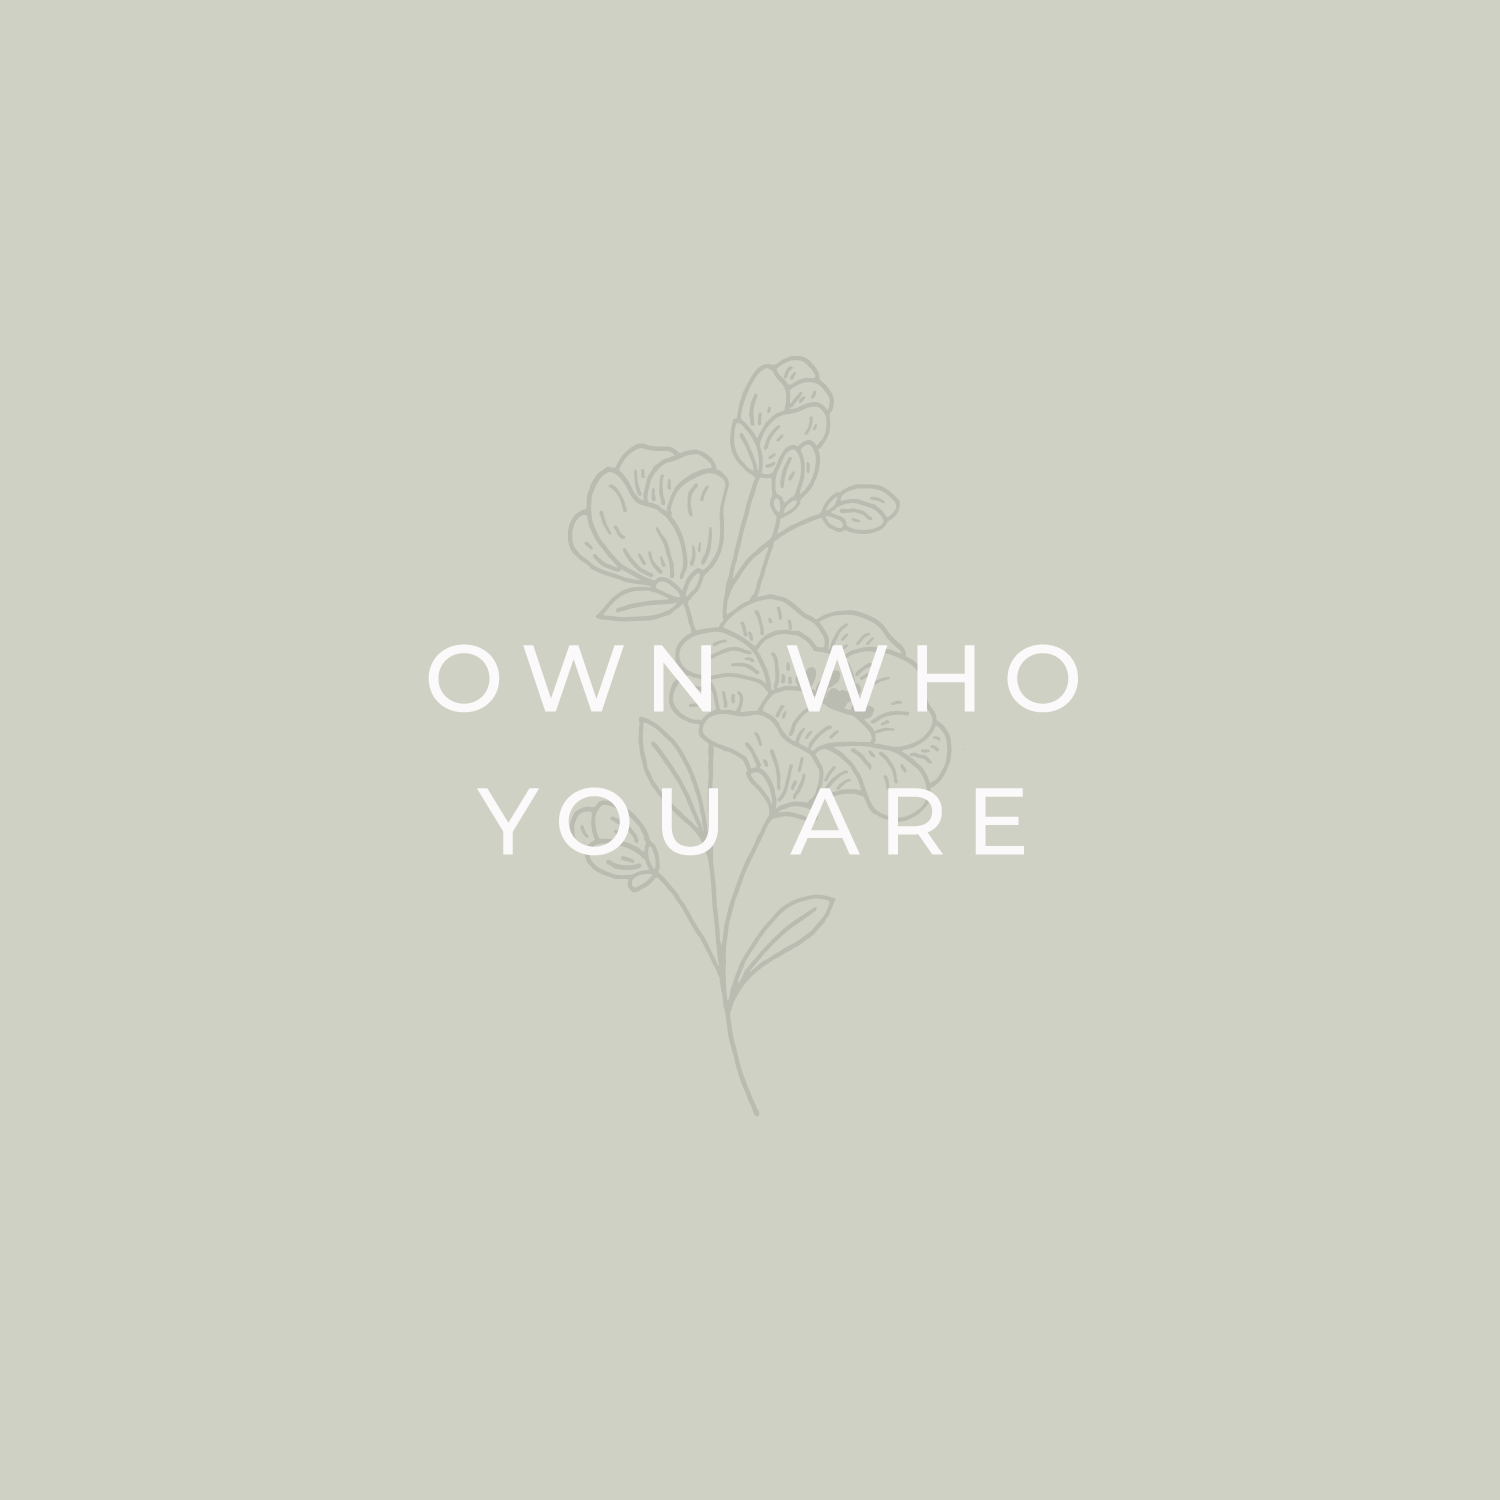 10 Encouraging Quotes about being yourself - Bea & Bloom Creative Design Studio